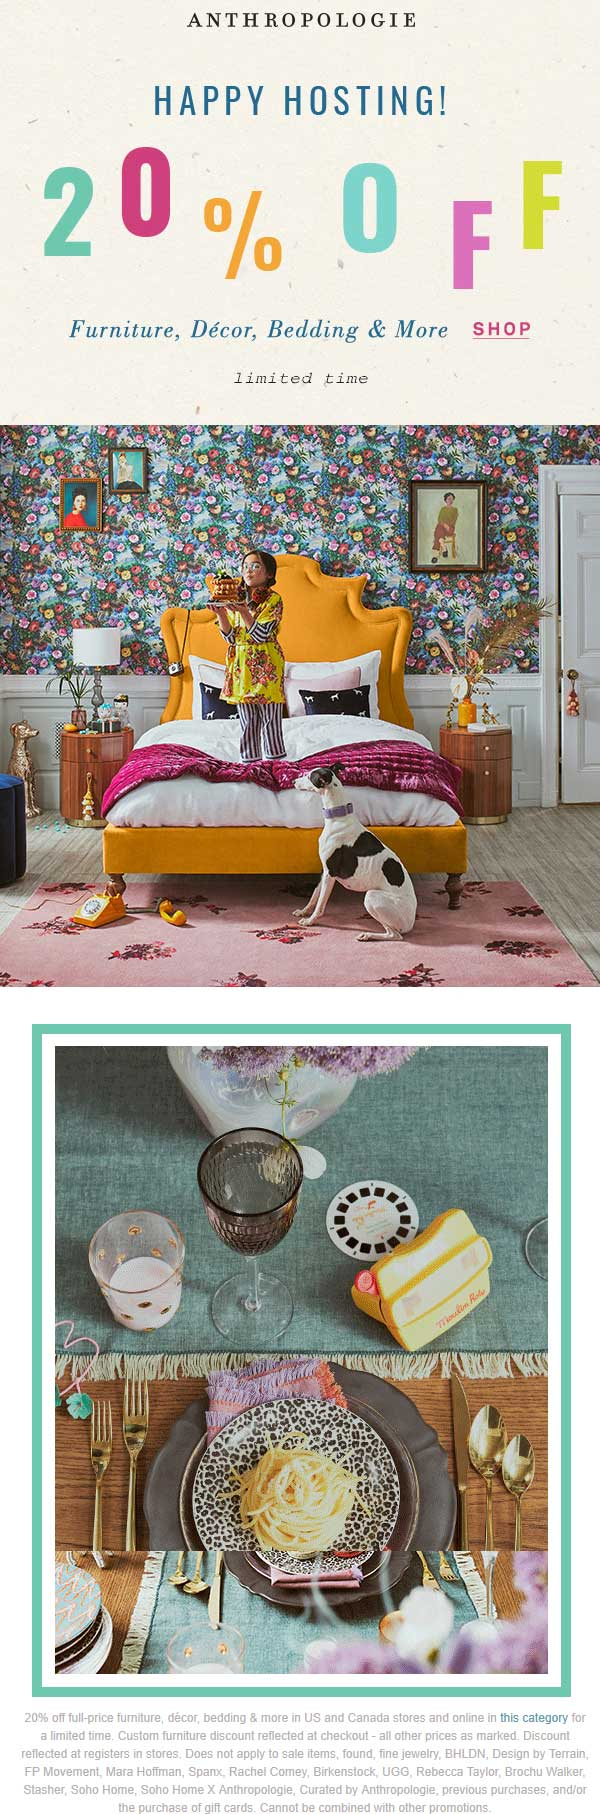 Anthropologie Coupon January 2020 20% off furniture decor & bedding at Anthropologie, ditto online